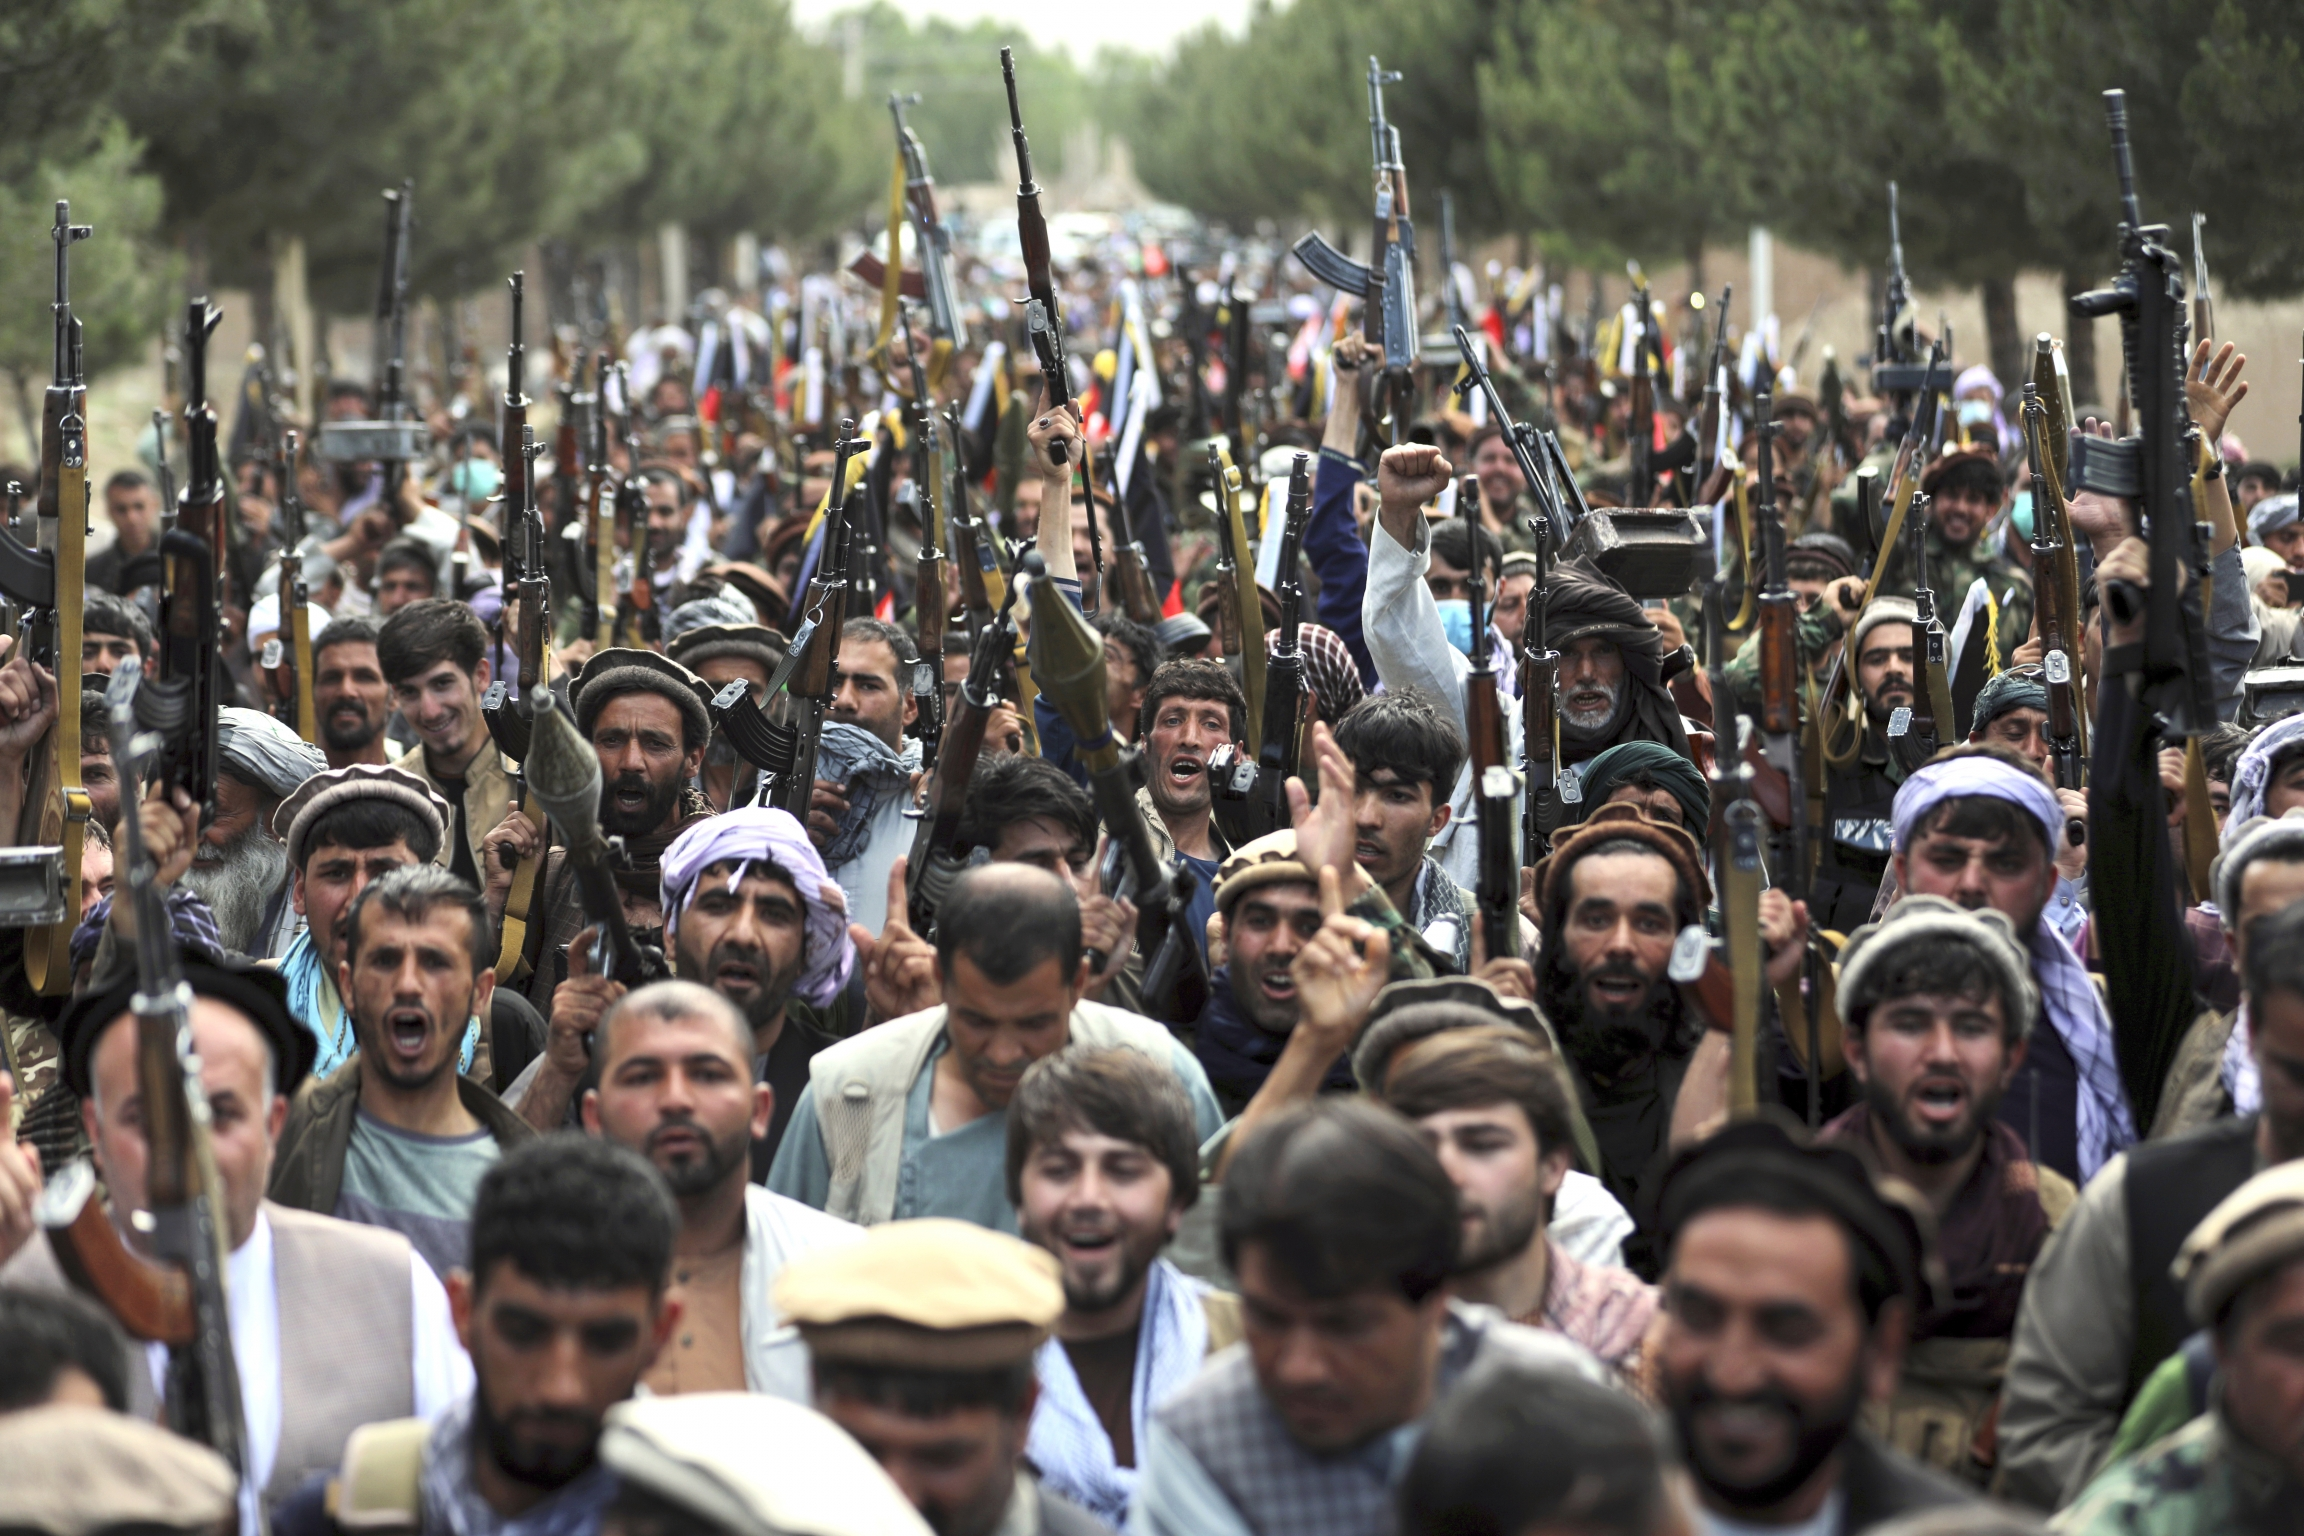 A crowd of Taliban fighters in a road, holding automatic rifles in the air